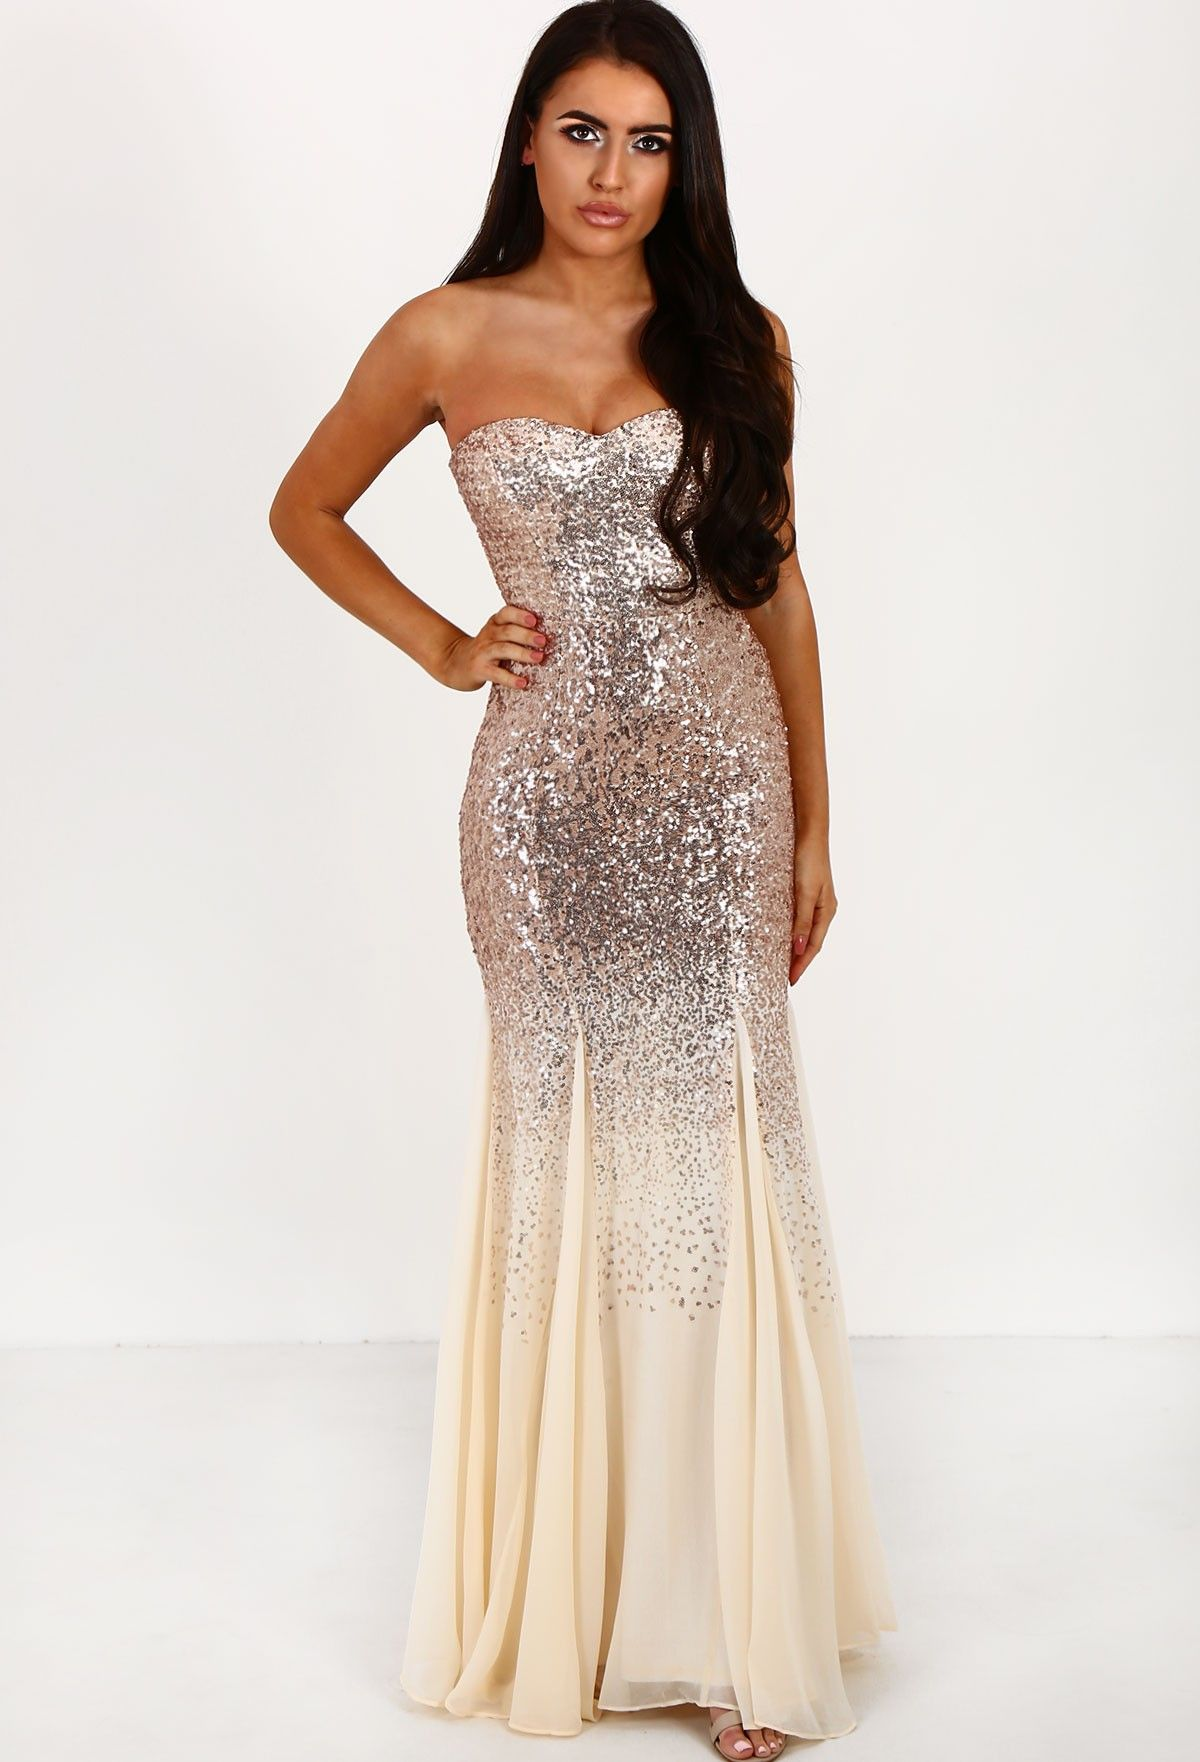 c340070e6a5 PREMIUM Once Upon A Time Champagne Sequin Strapless Fishtail Maxi ...